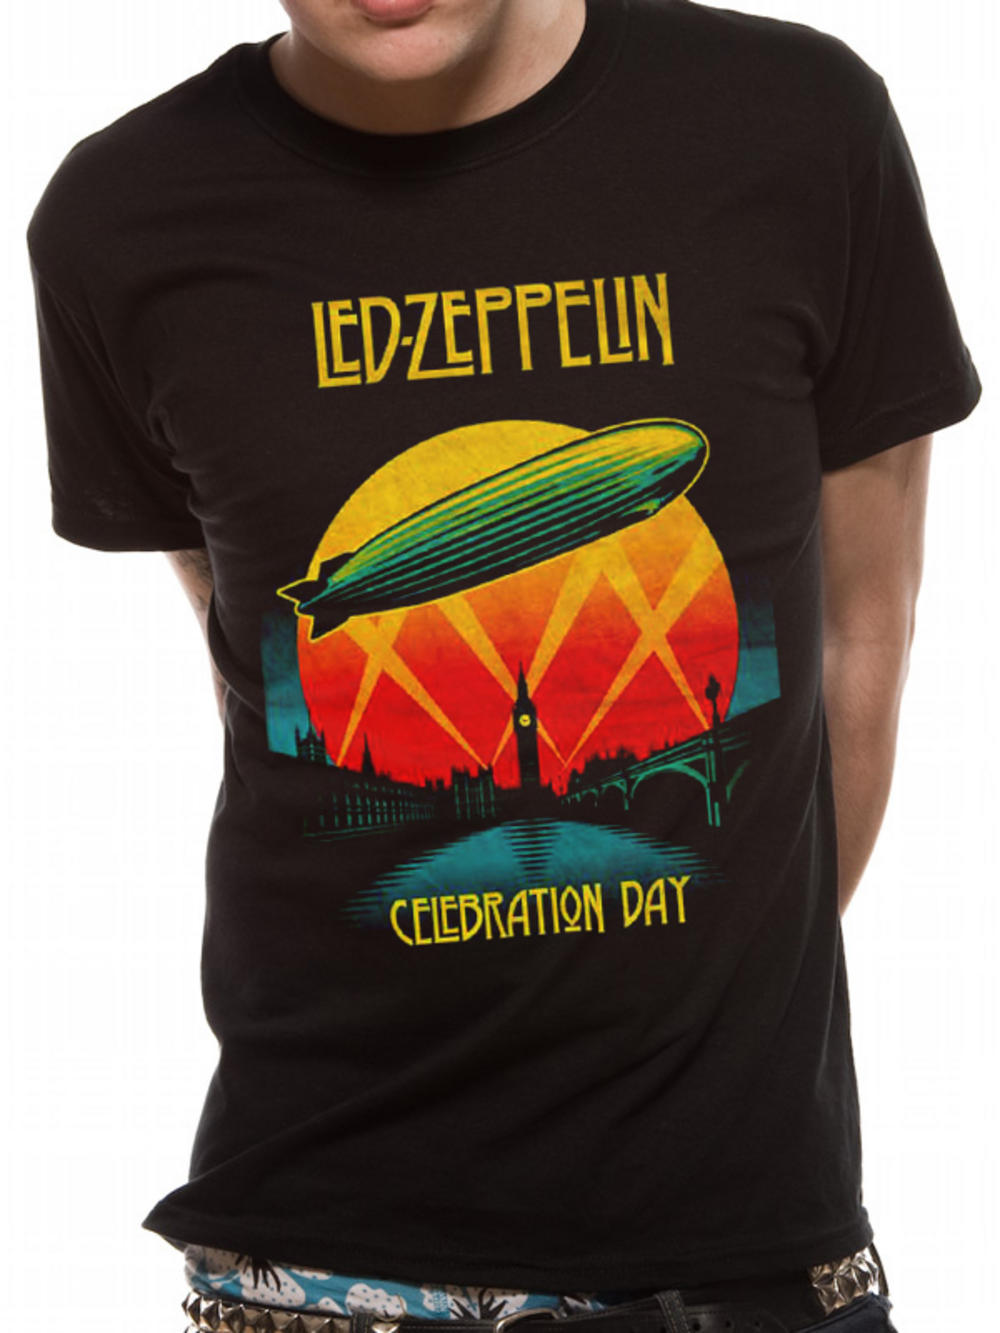 led zeppelin celebration day t shirt buy led zeppelin. Black Bedroom Furniture Sets. Home Design Ideas